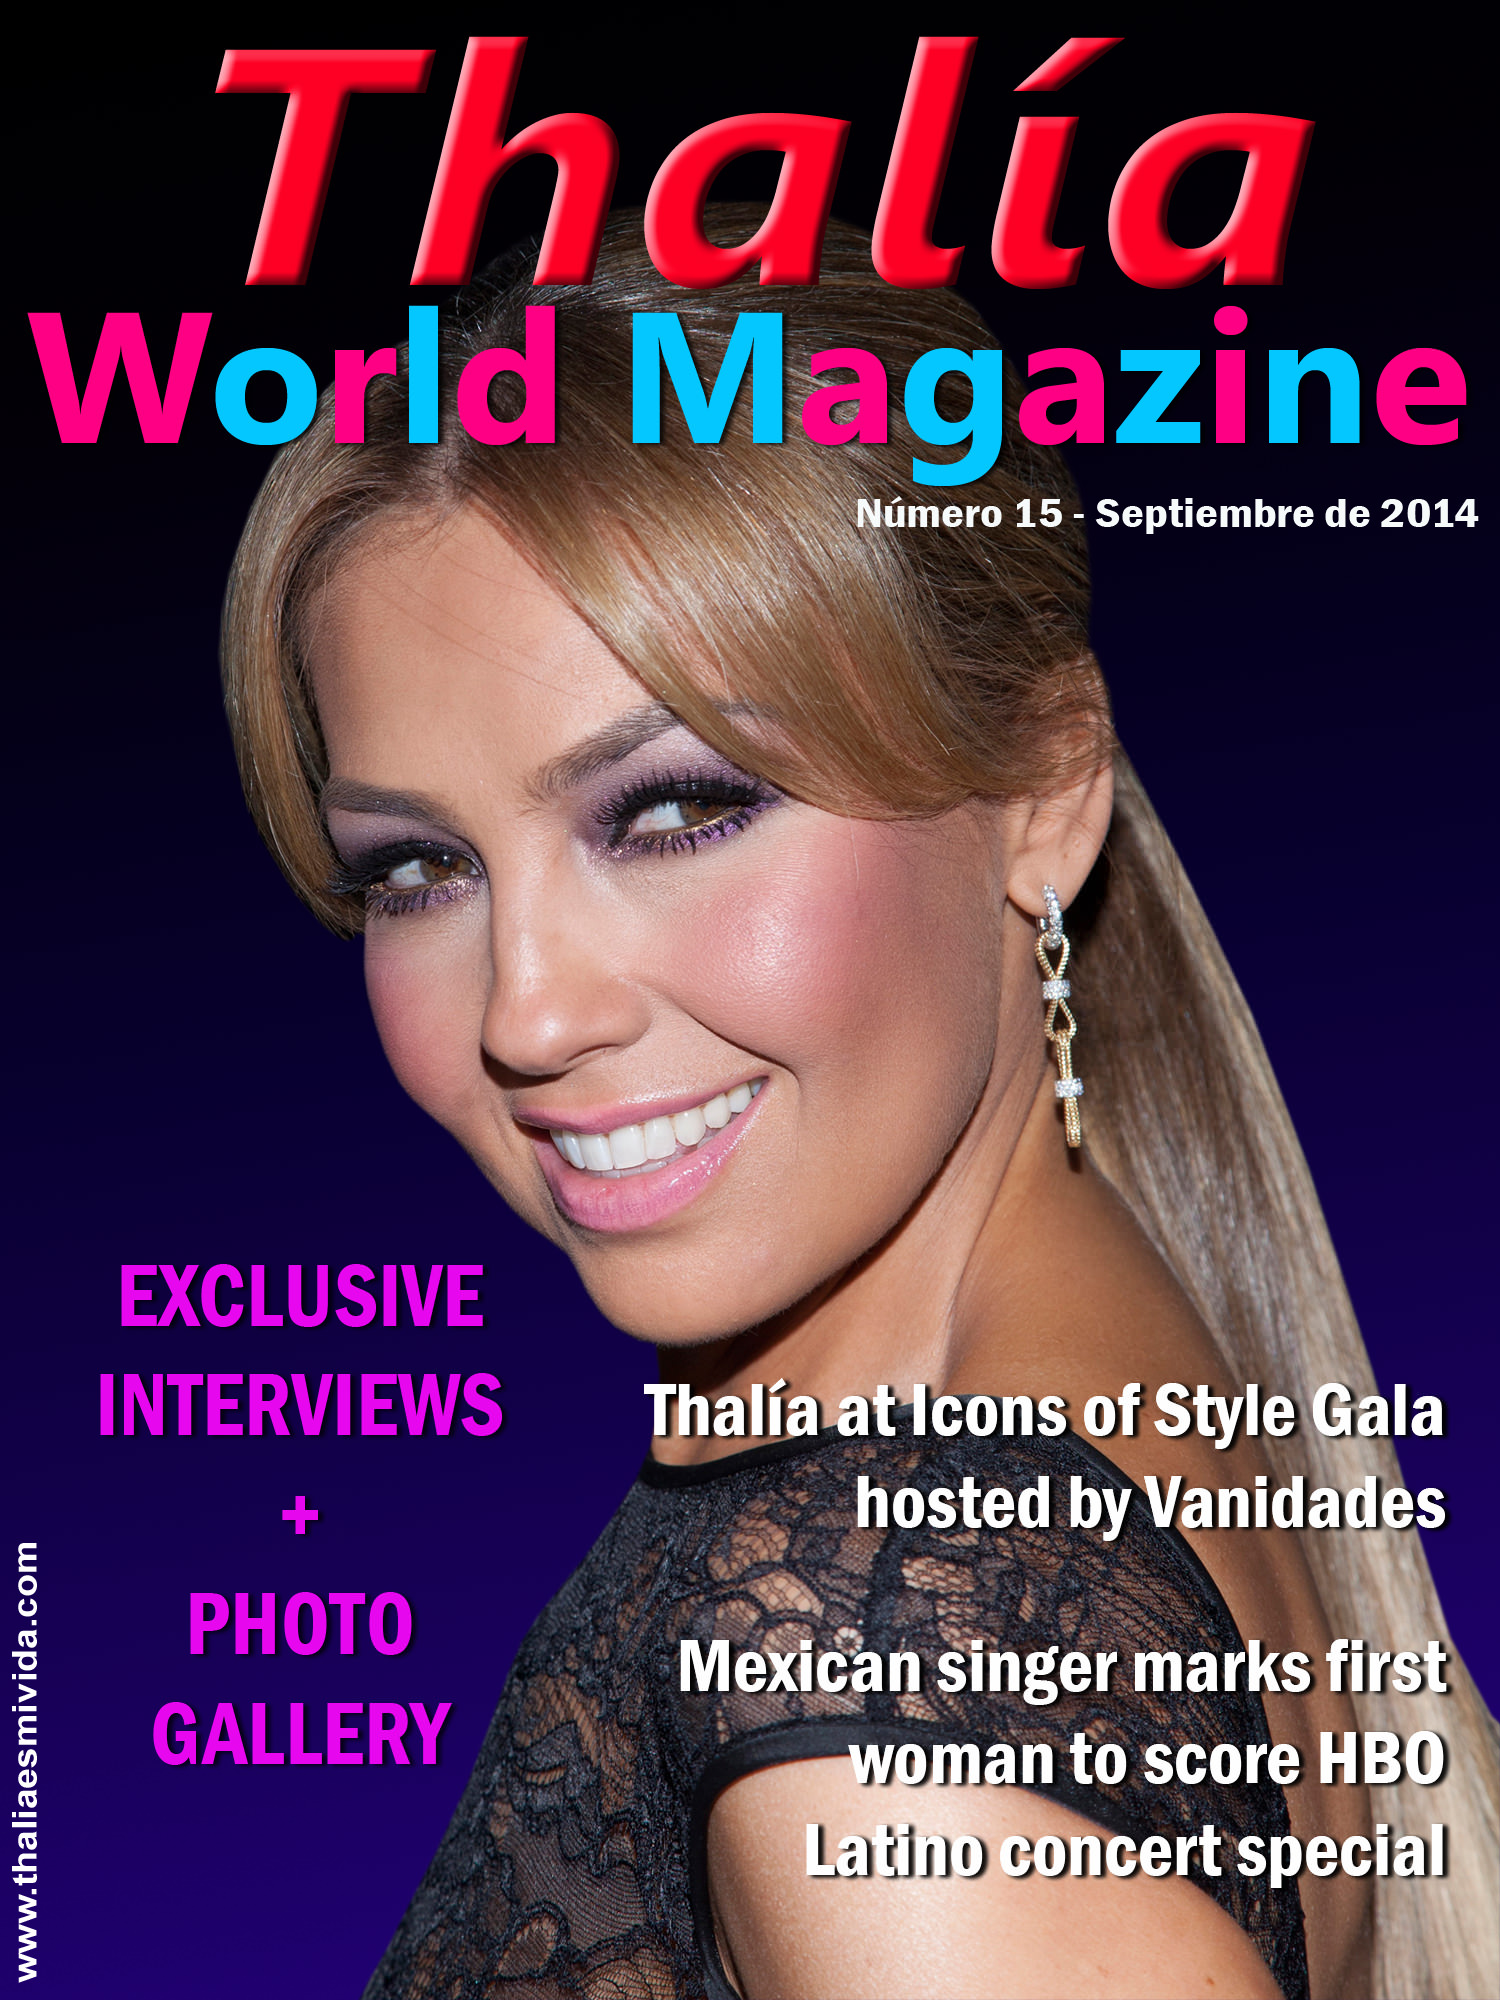 Thalia World Magazine 15